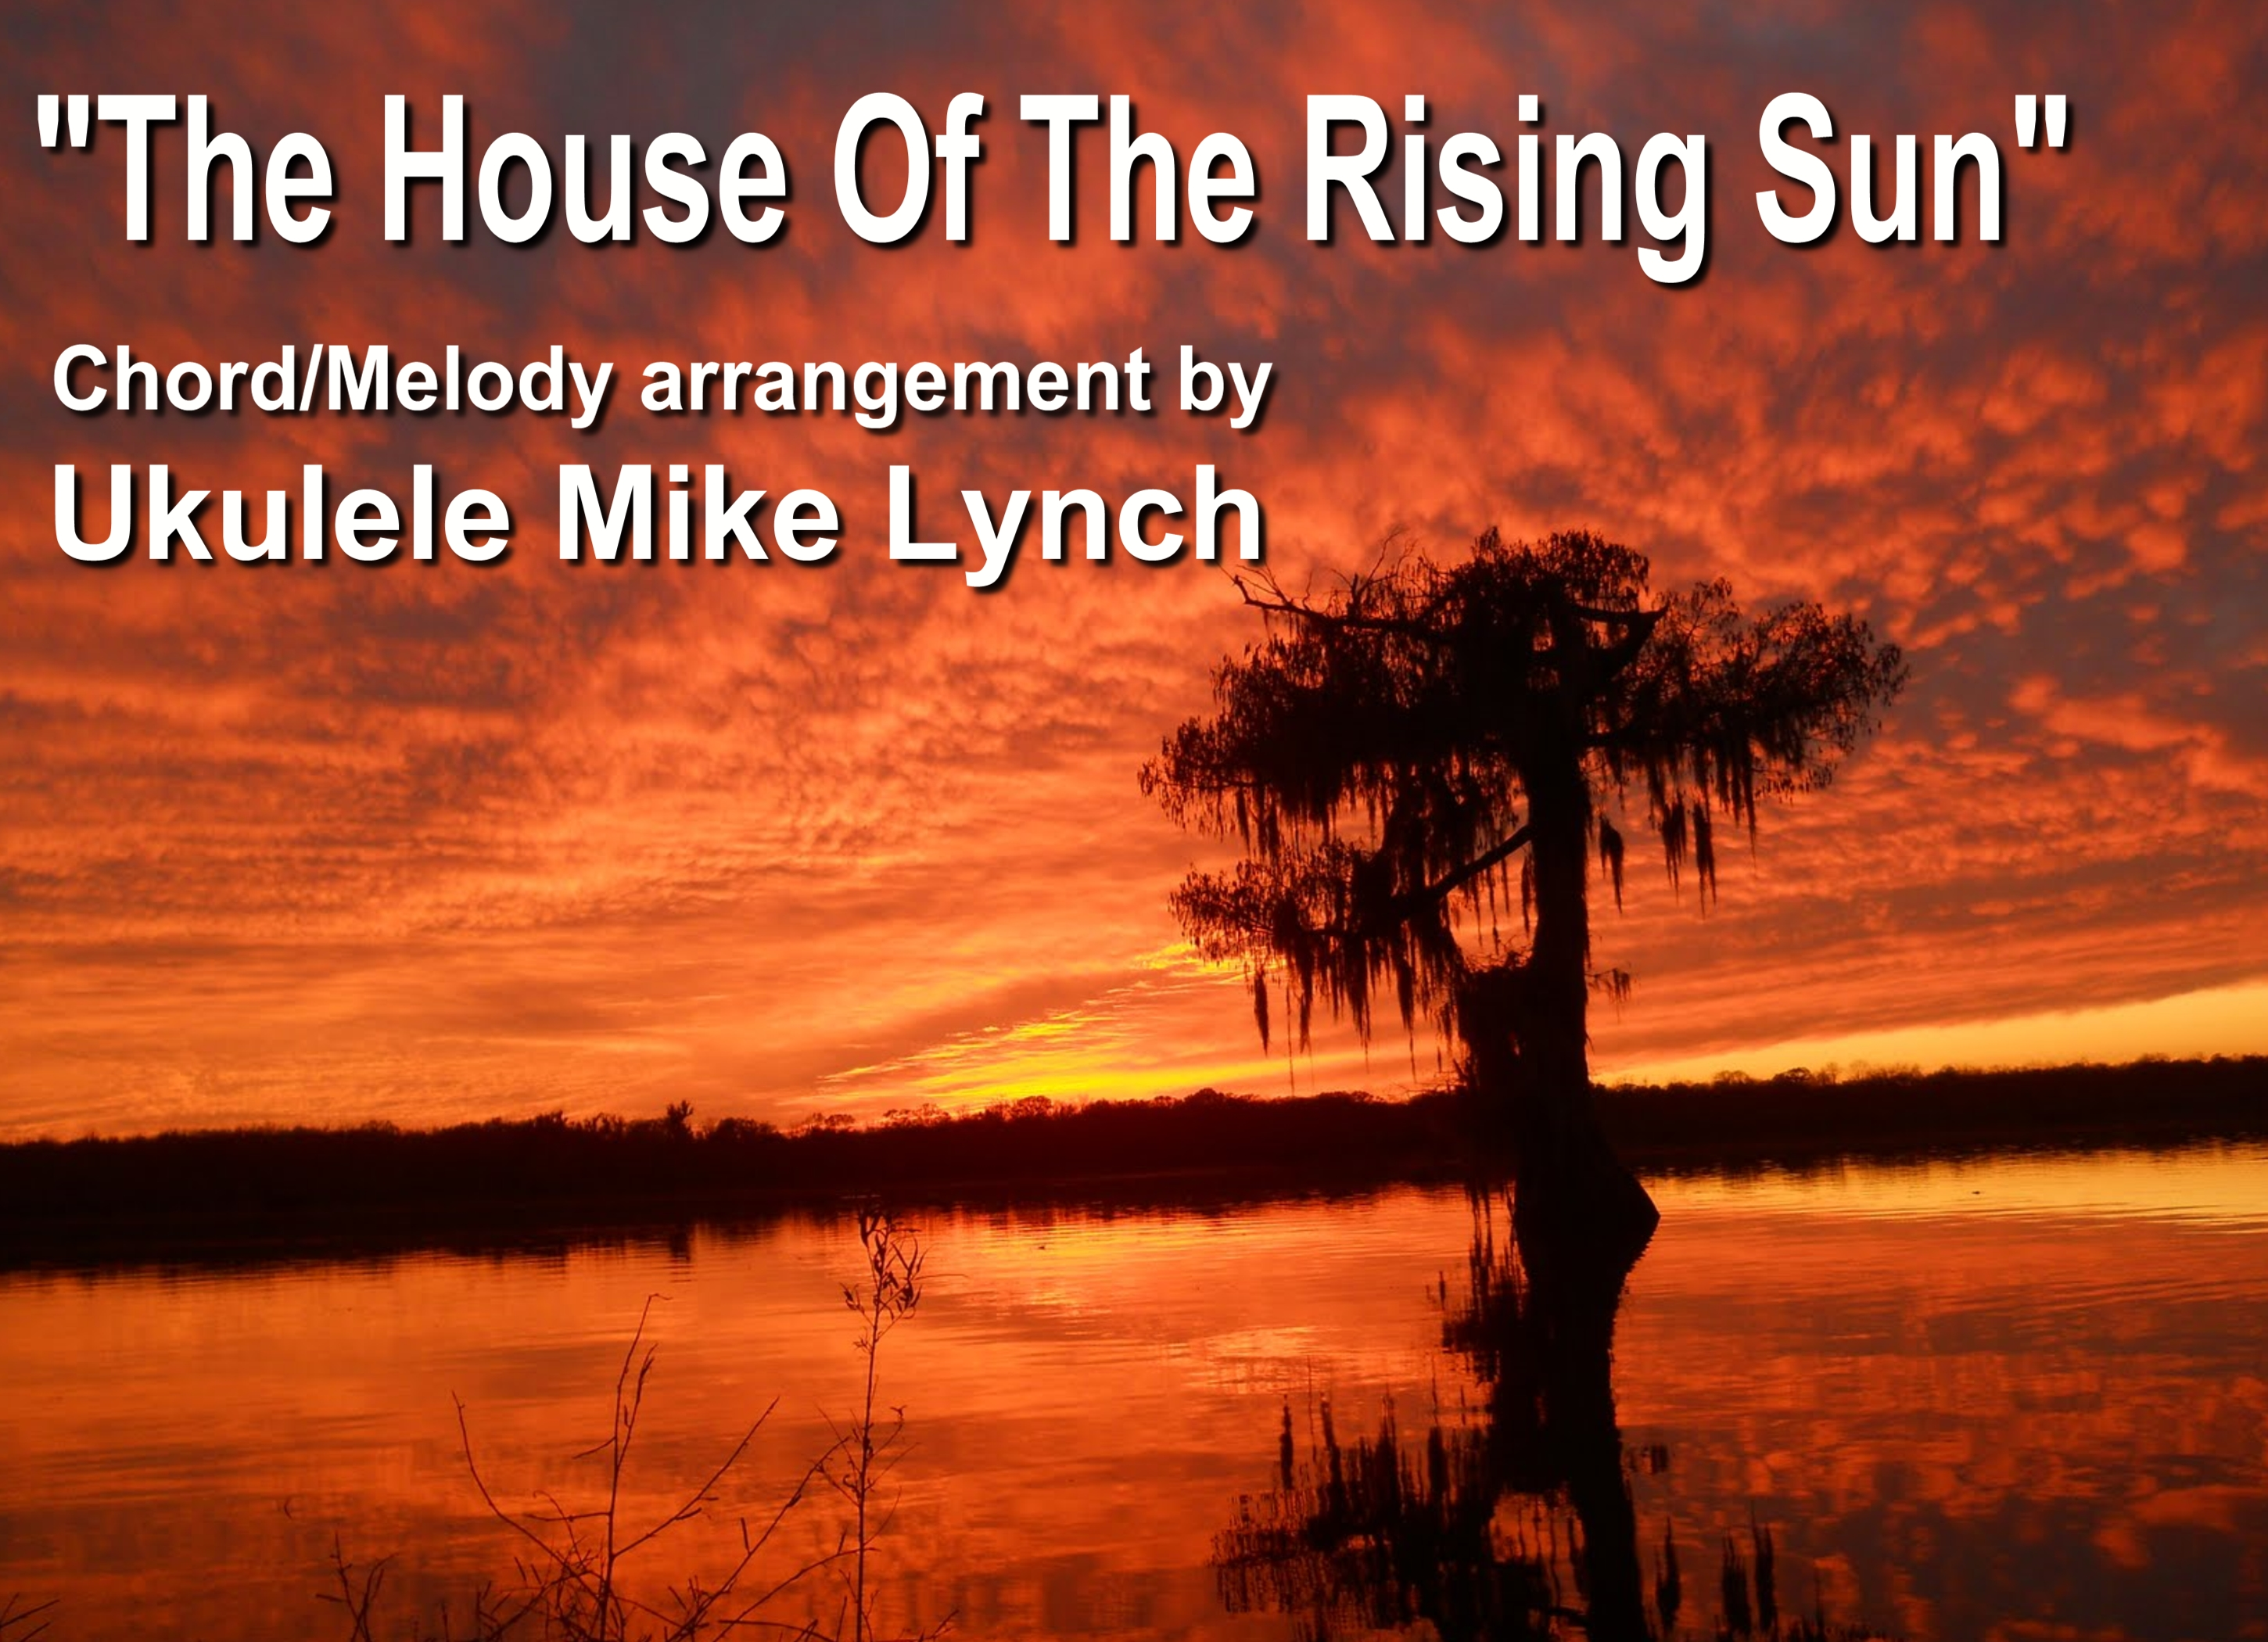 u201cTHE HOUSE OF THE RISING SUNu201d . . . . Chord Melody arrangement by Ukulele Mike Lynch ...